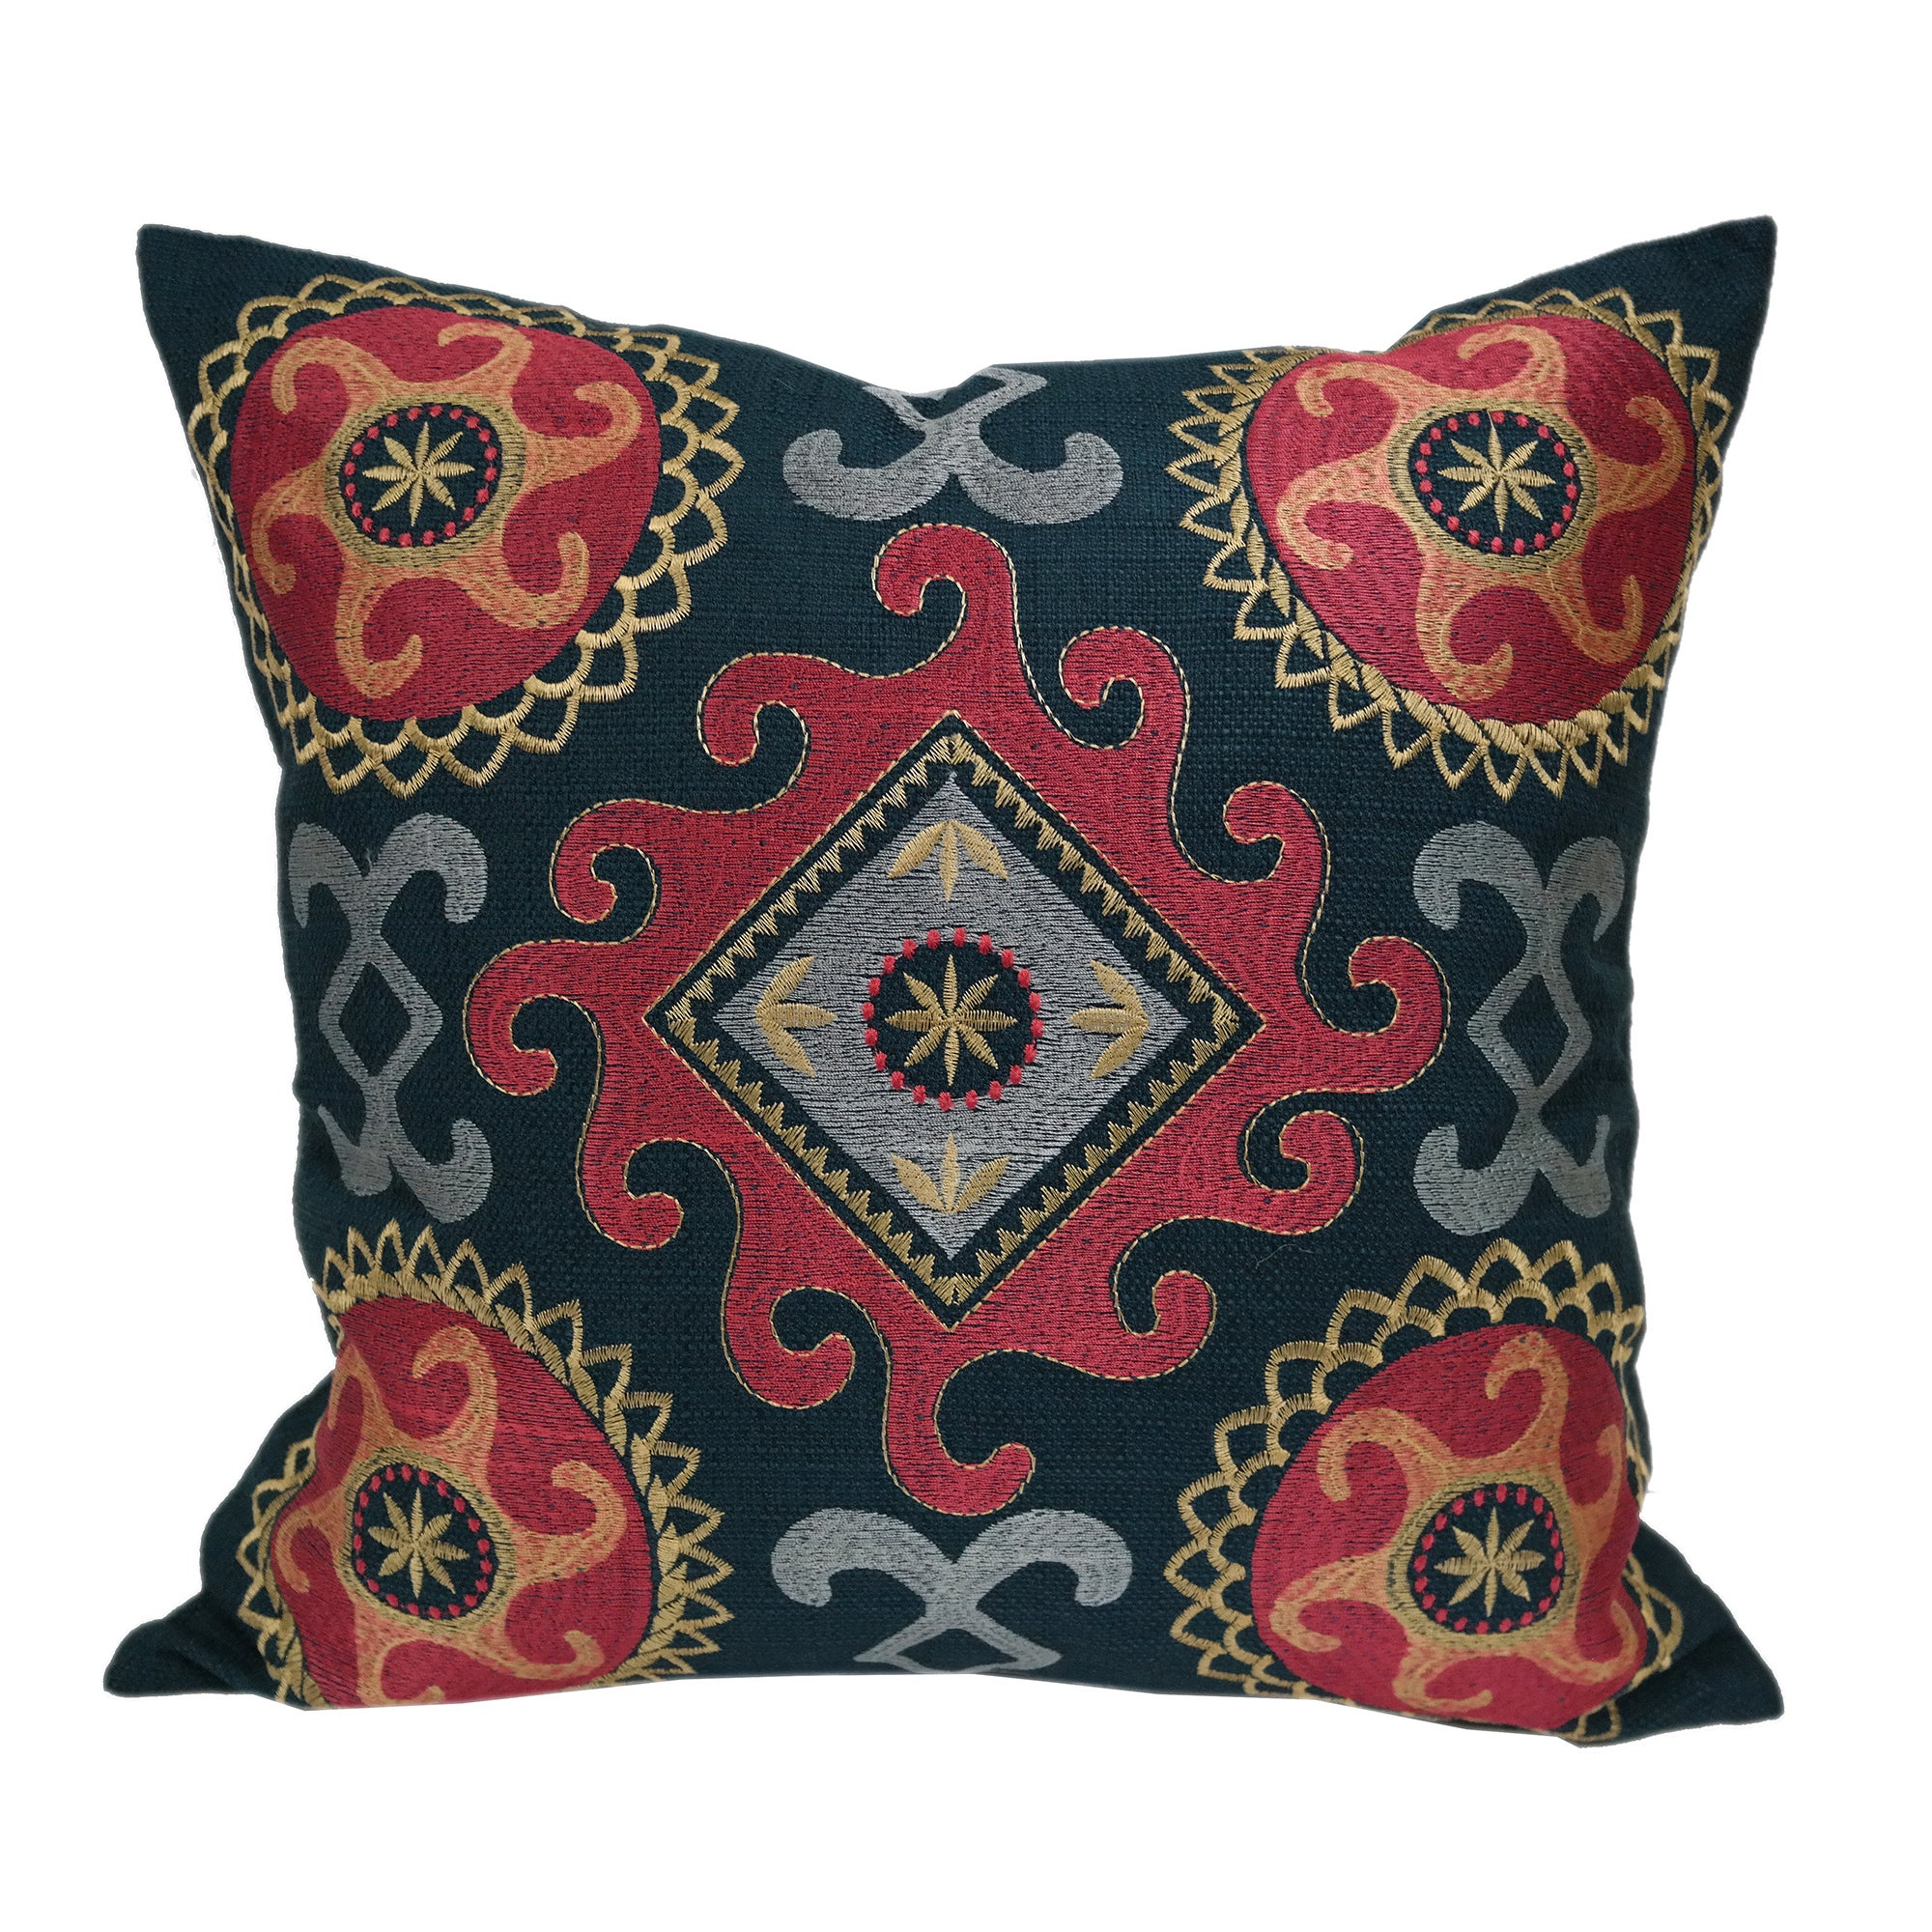 Stunning Embroidered Navy Blue Multi Color Throw Throw Pillowby Home Accent Pillows Overstock 15865748